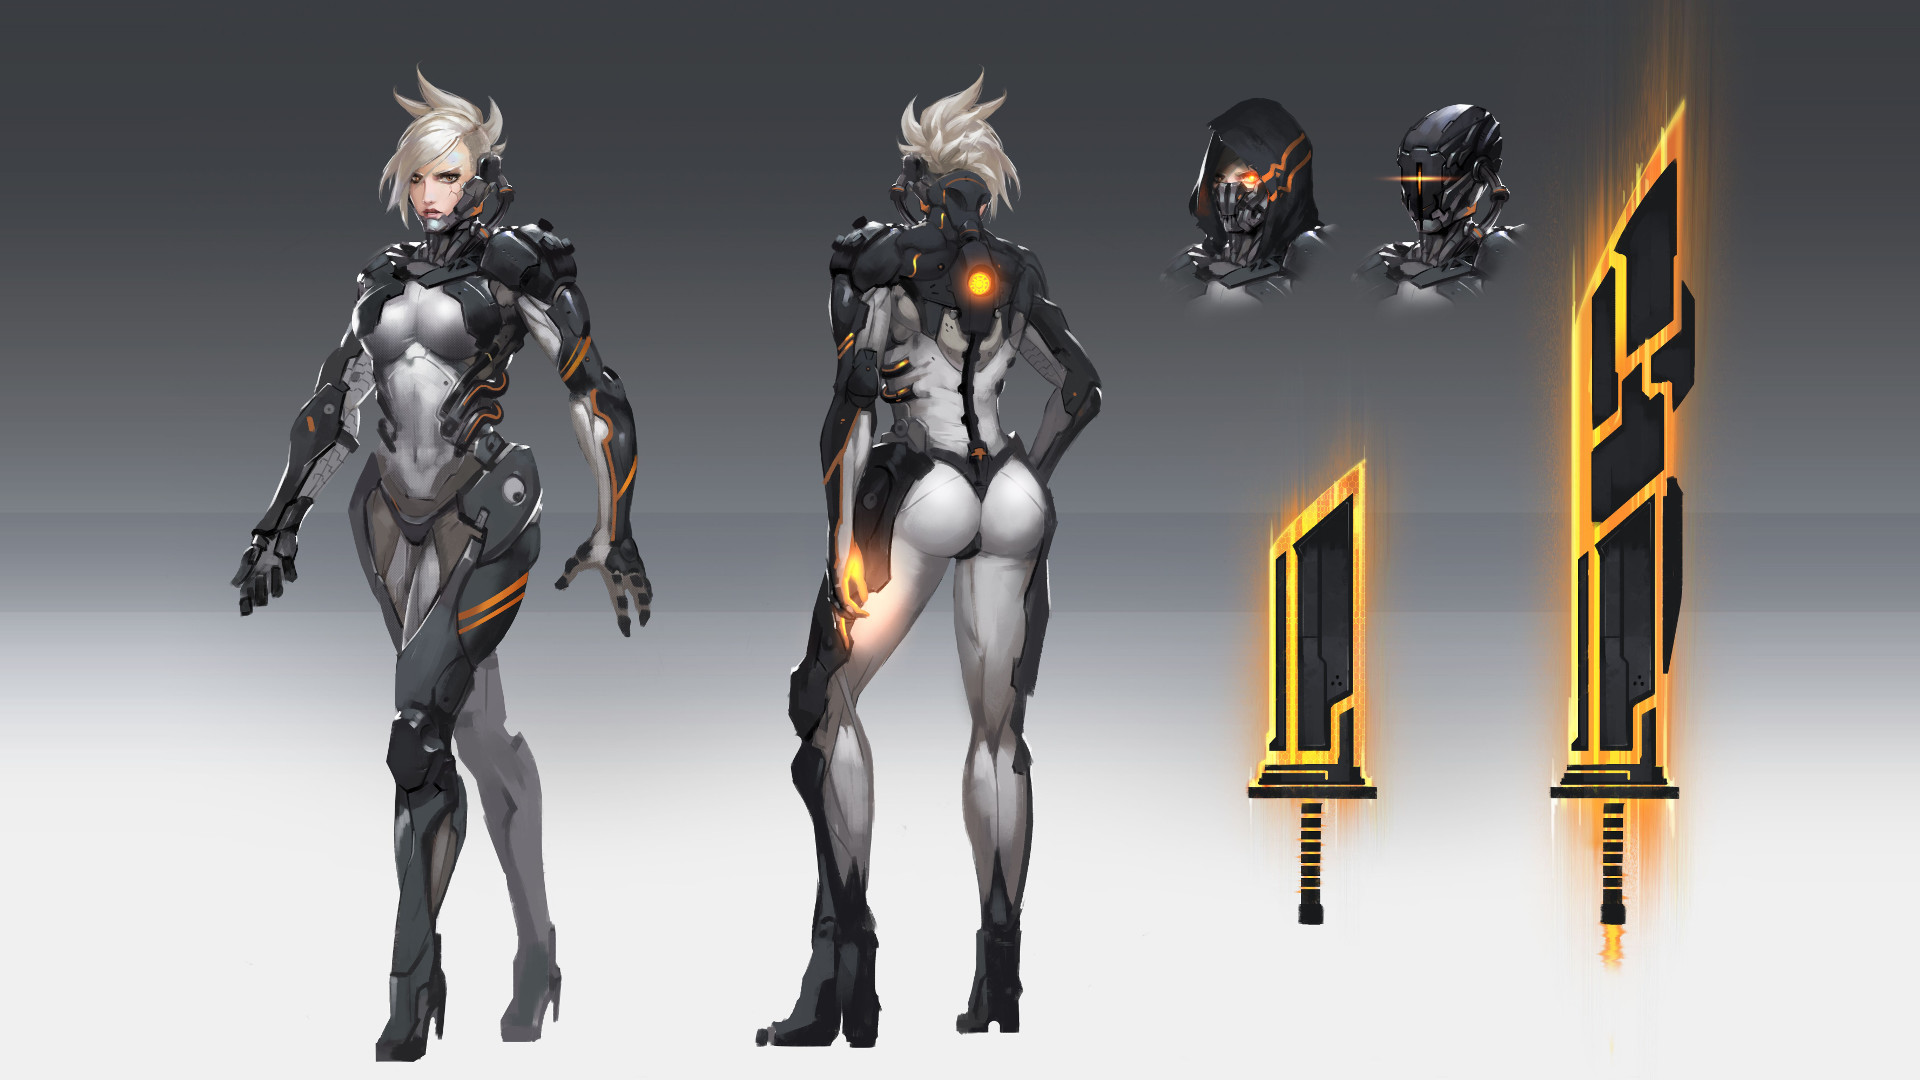 1920x1080 Video Game - League Of Legends Sword Bodysuit Riven (League Of Legends)  Wallpaper